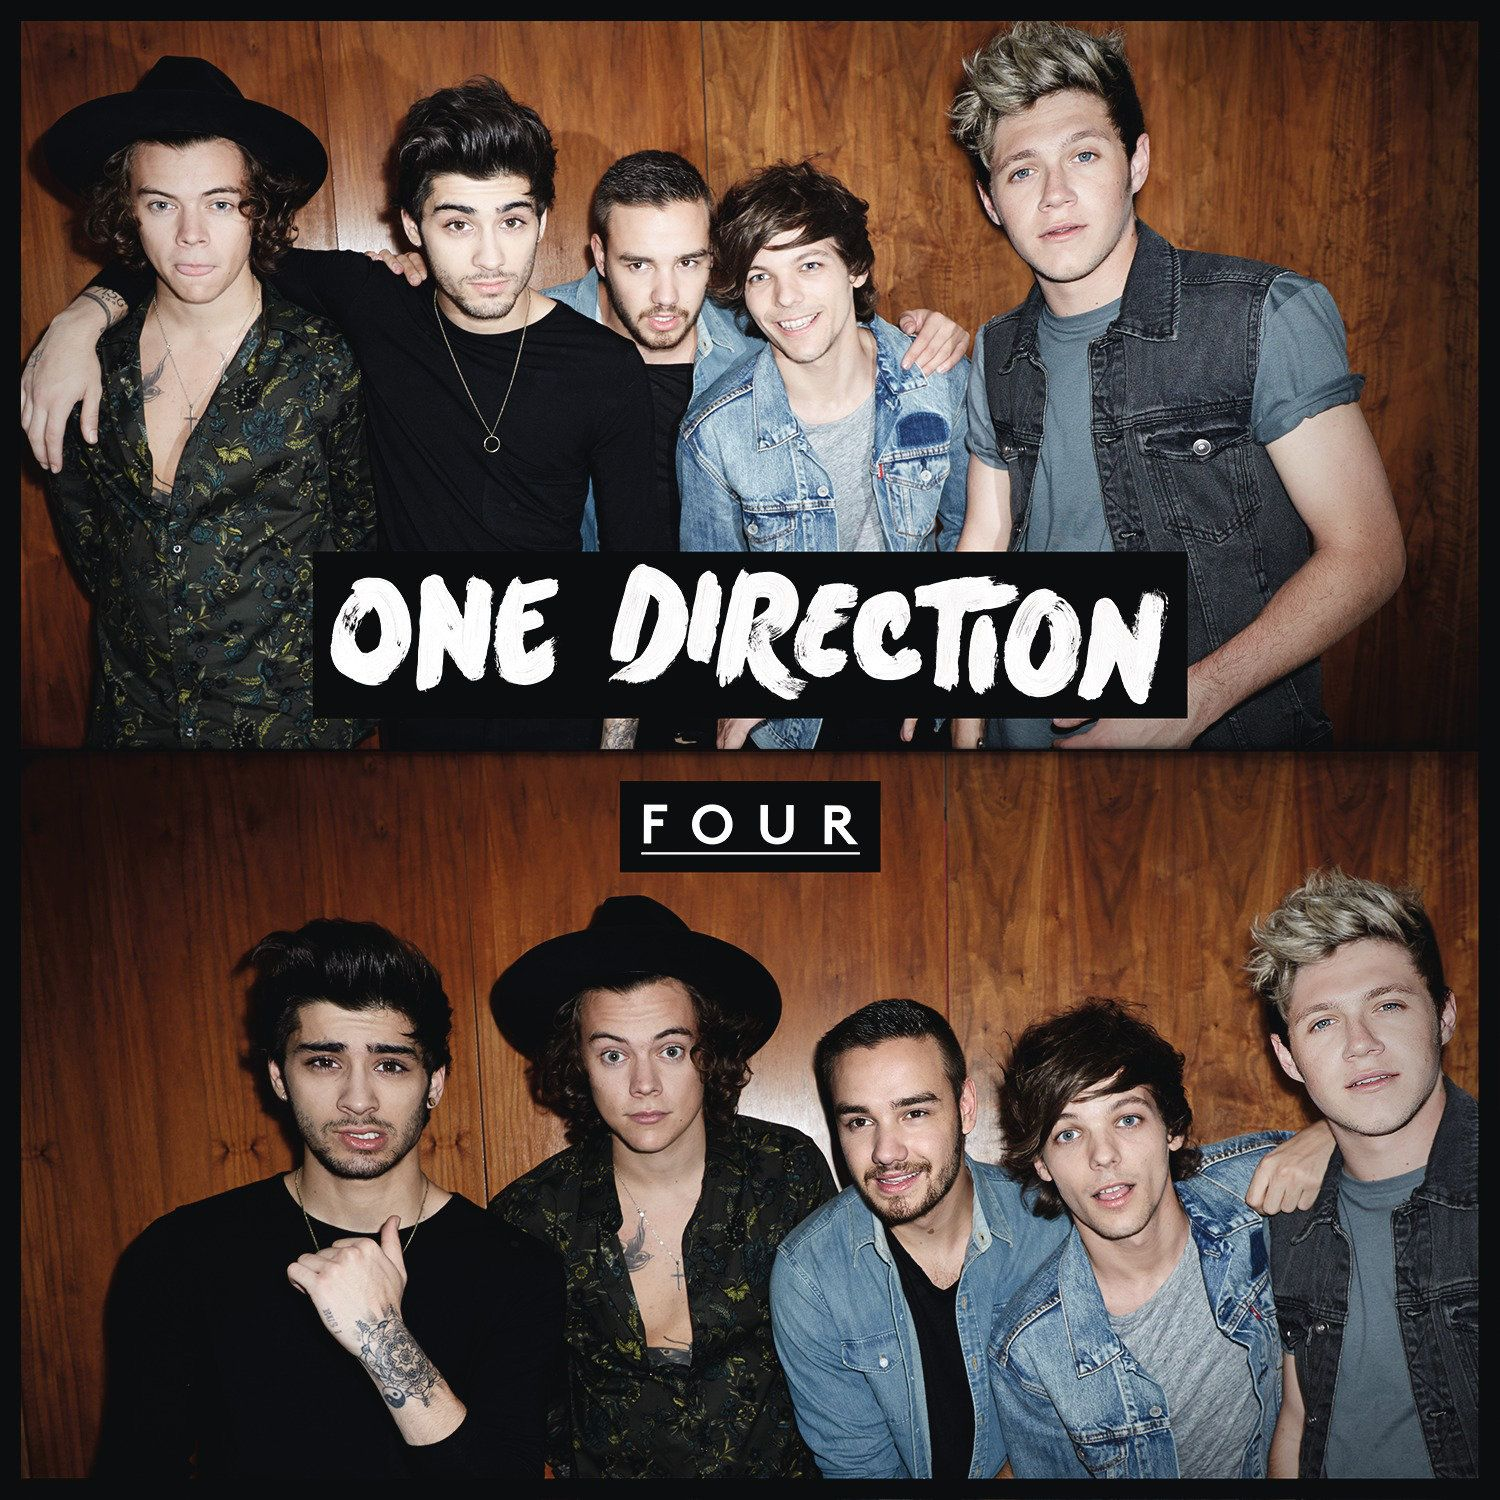 One Direction - Four album cover